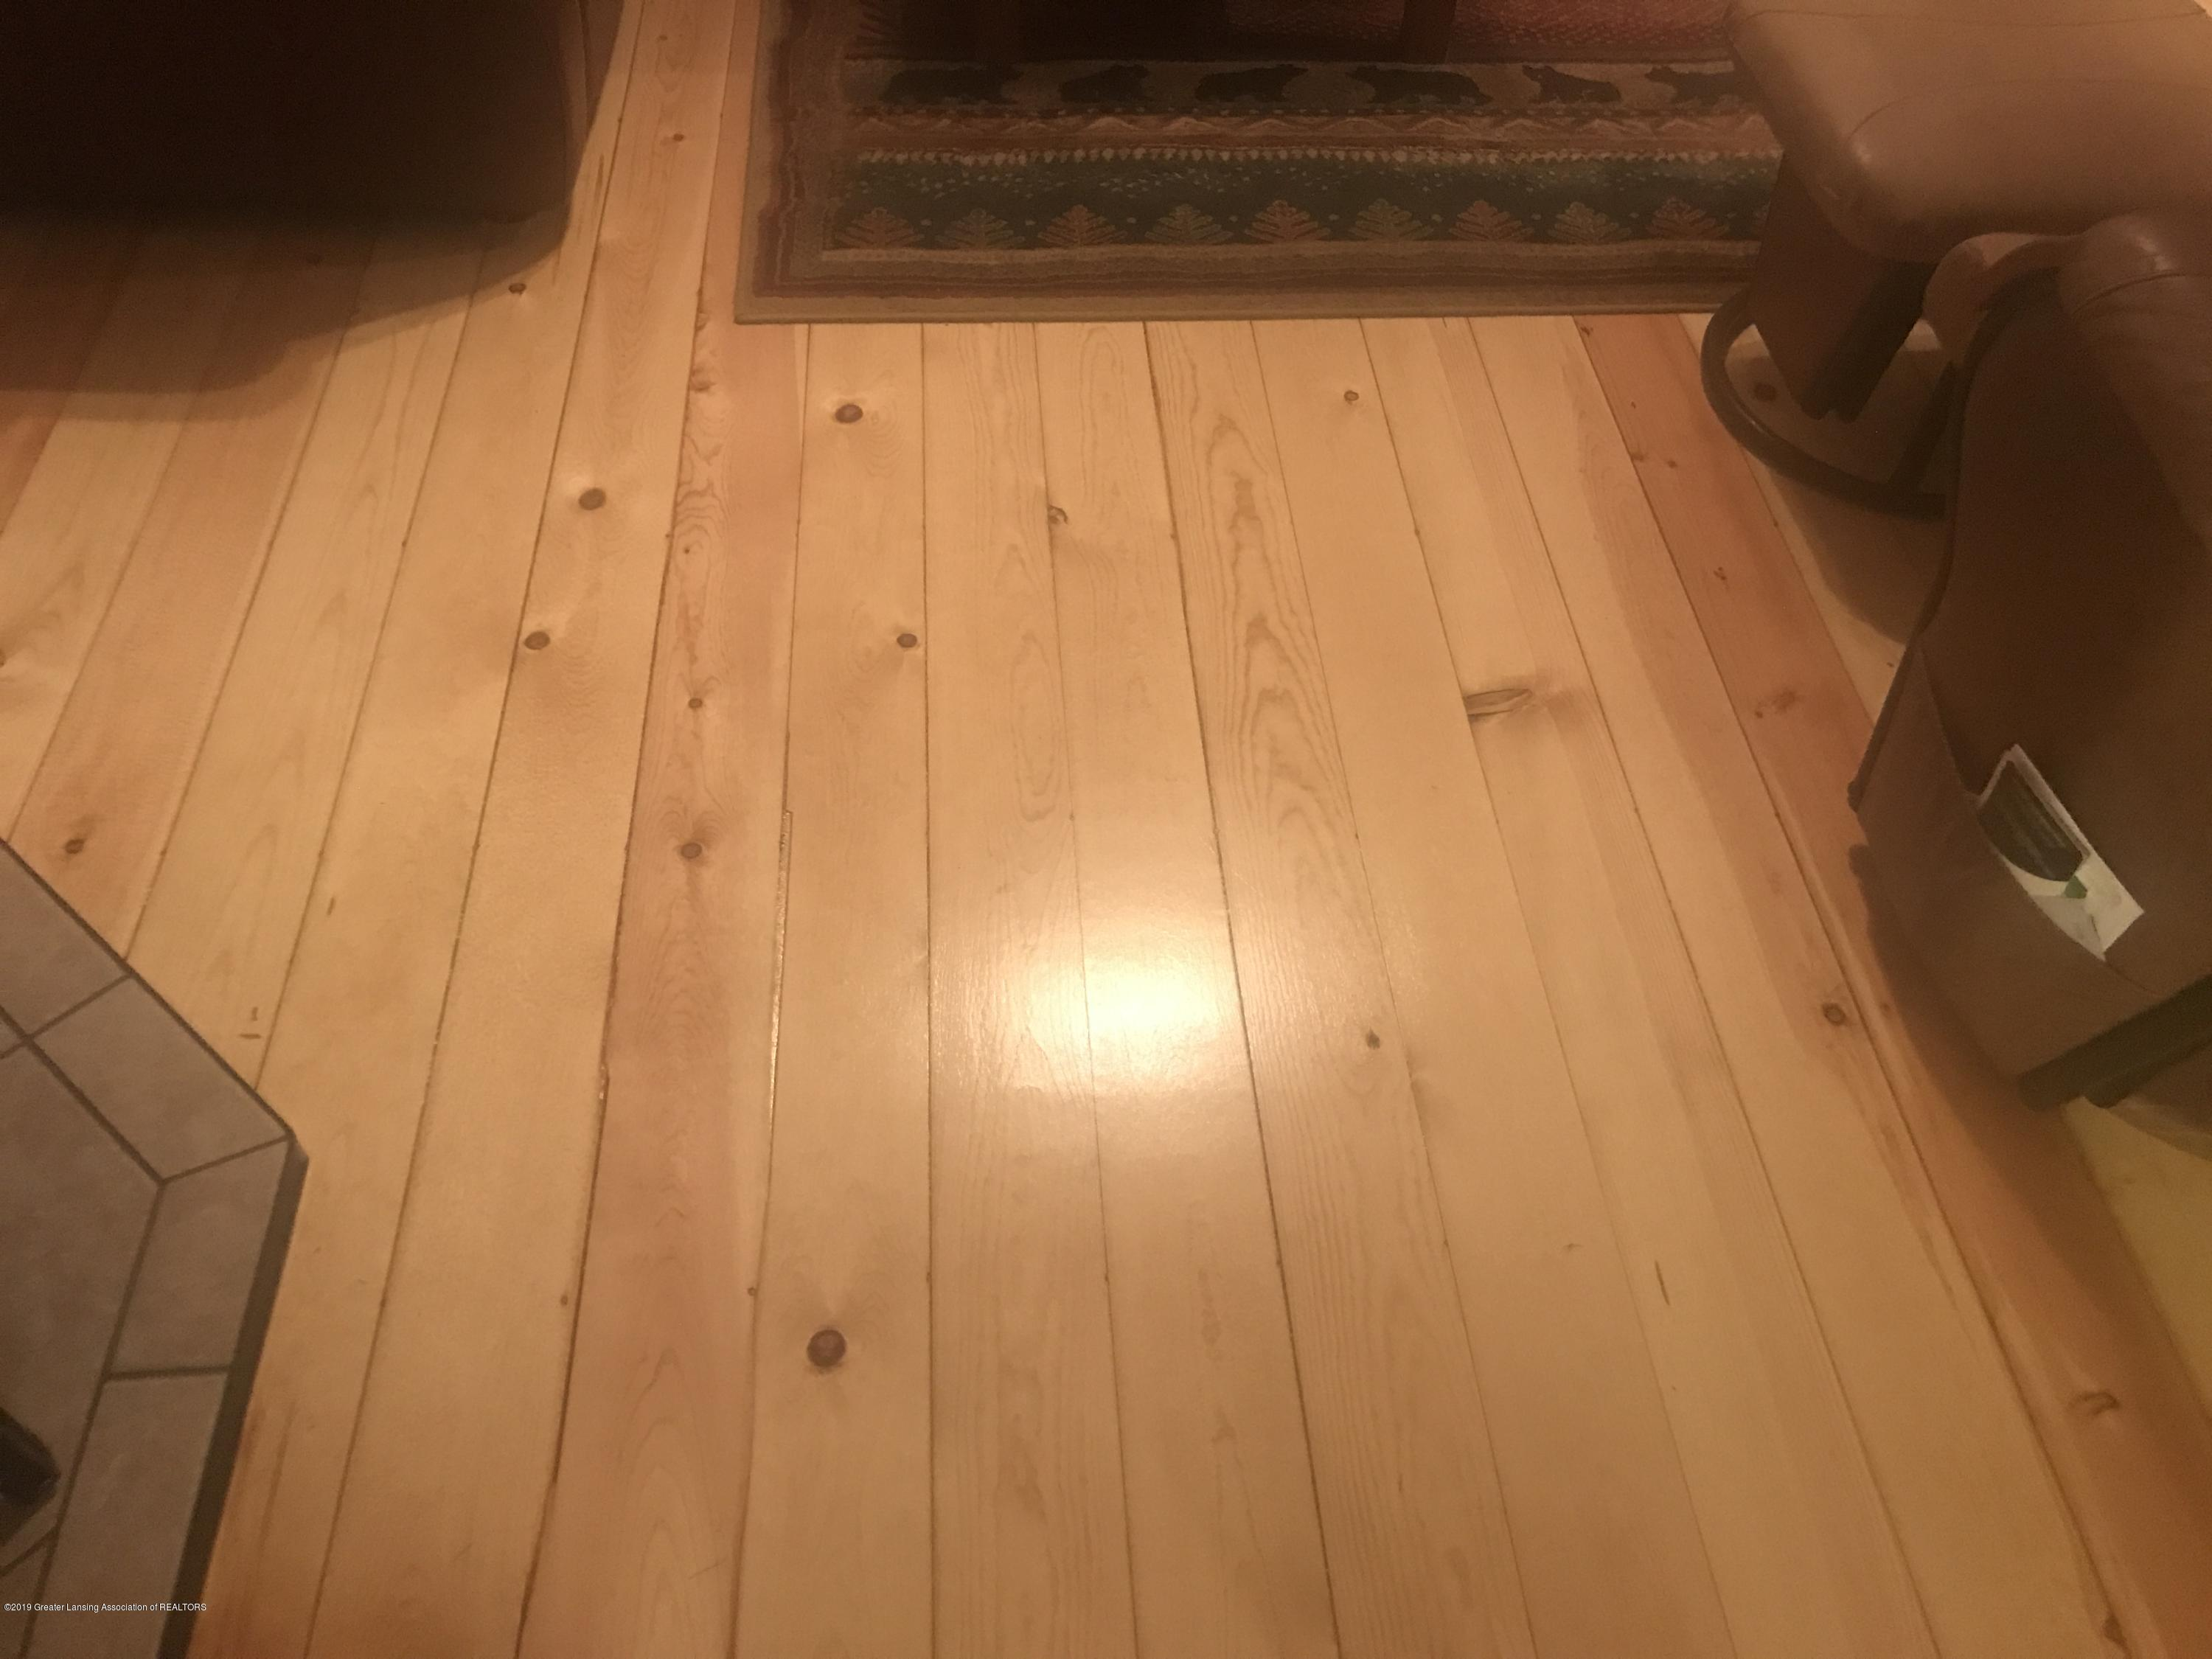 805 E Dill Dr - Beautiful Refinished Pine Wood Flooring. - 100